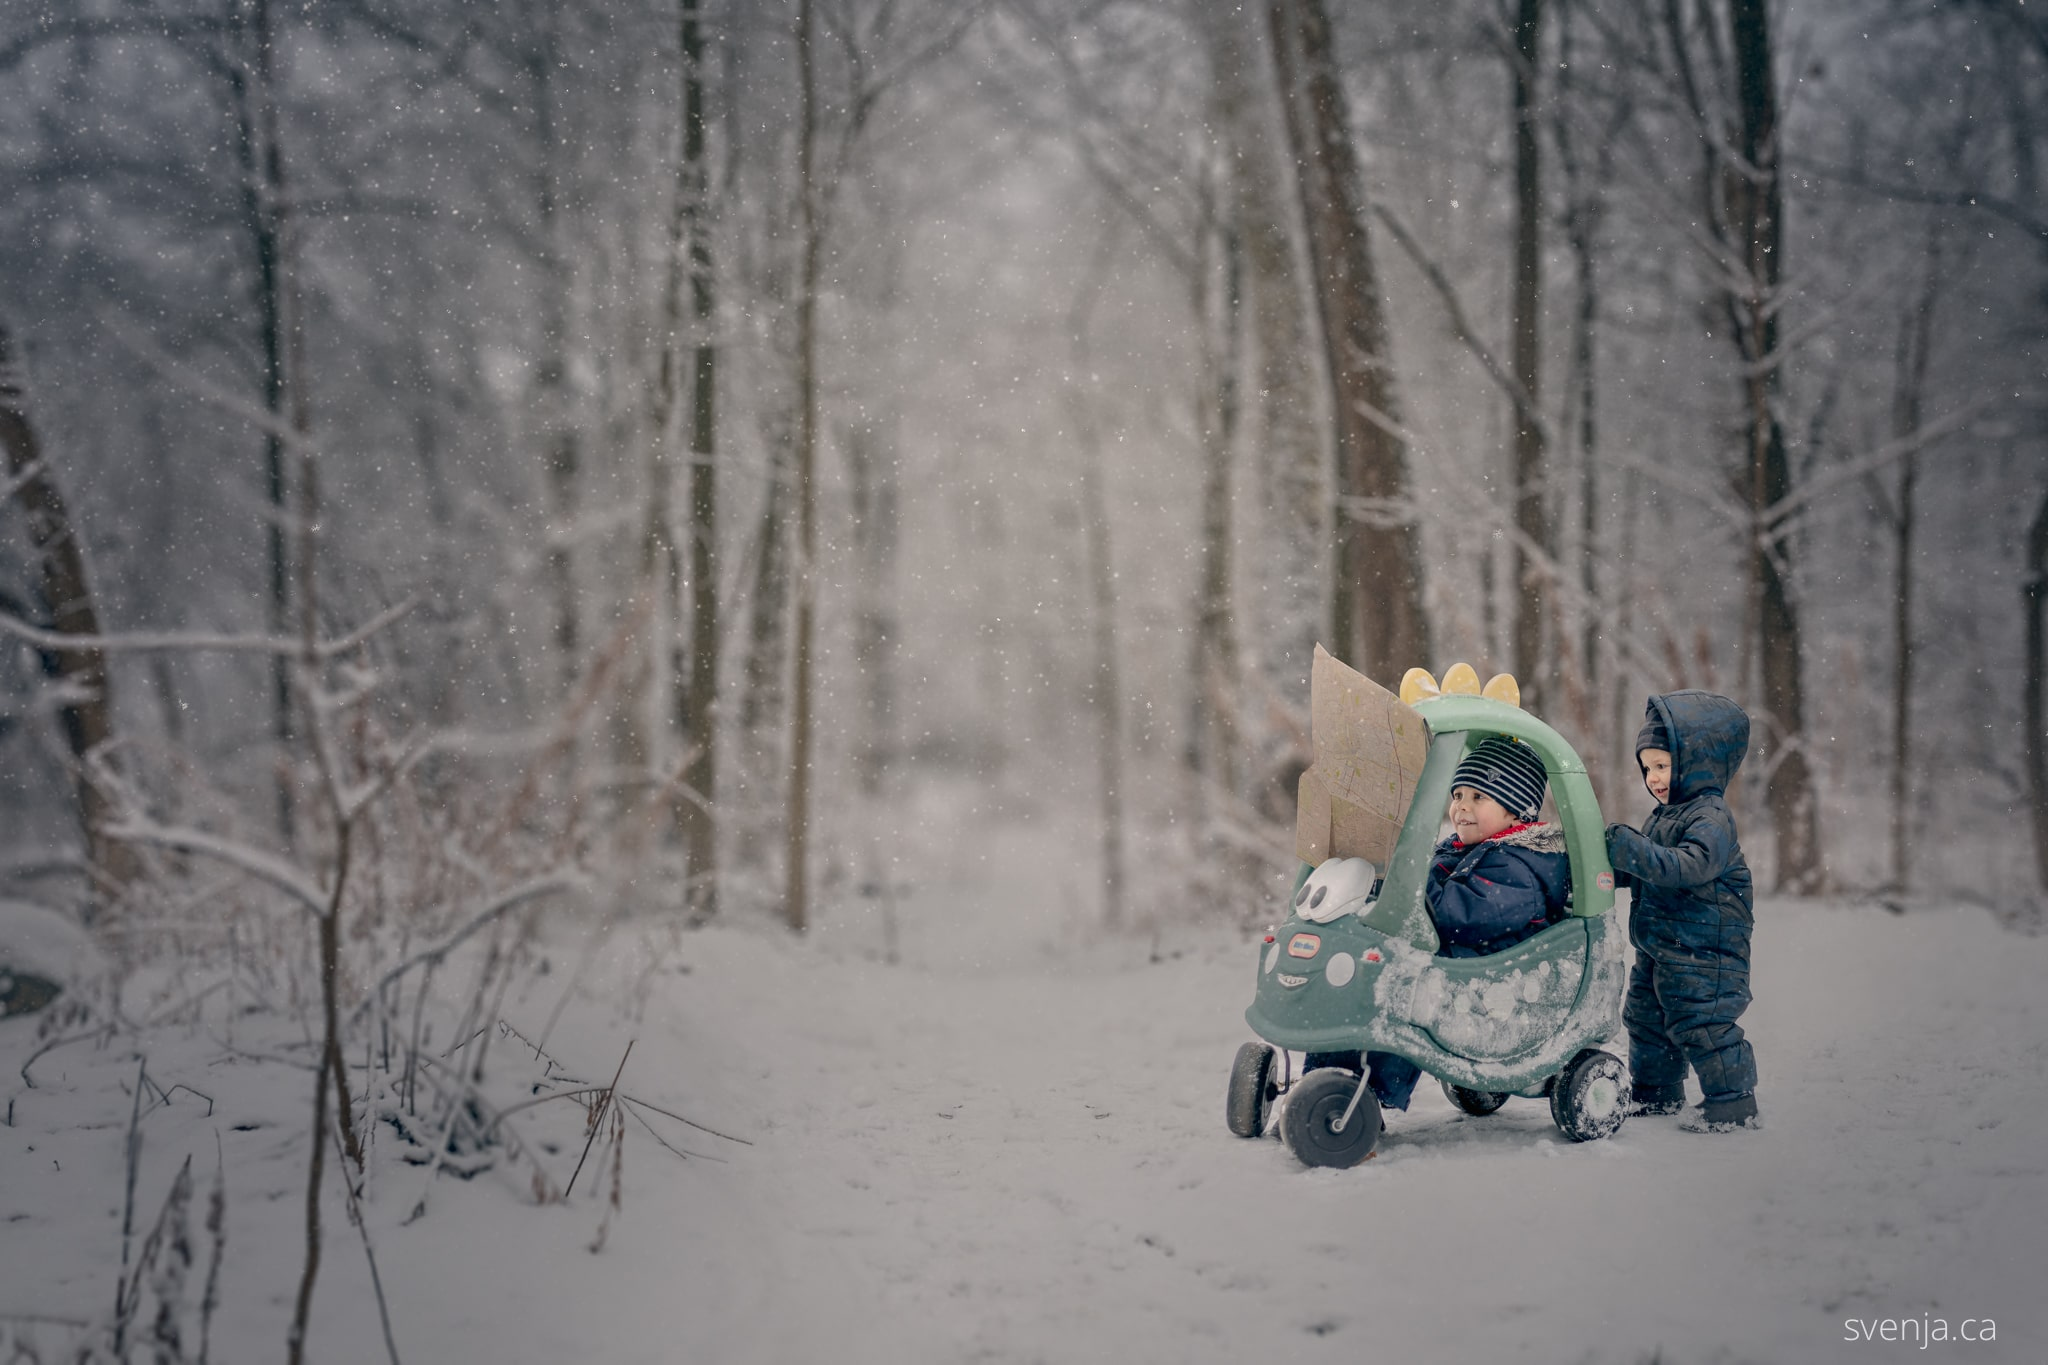 two young boys outside in forest, one sitting in child's toy car, both looking at a map